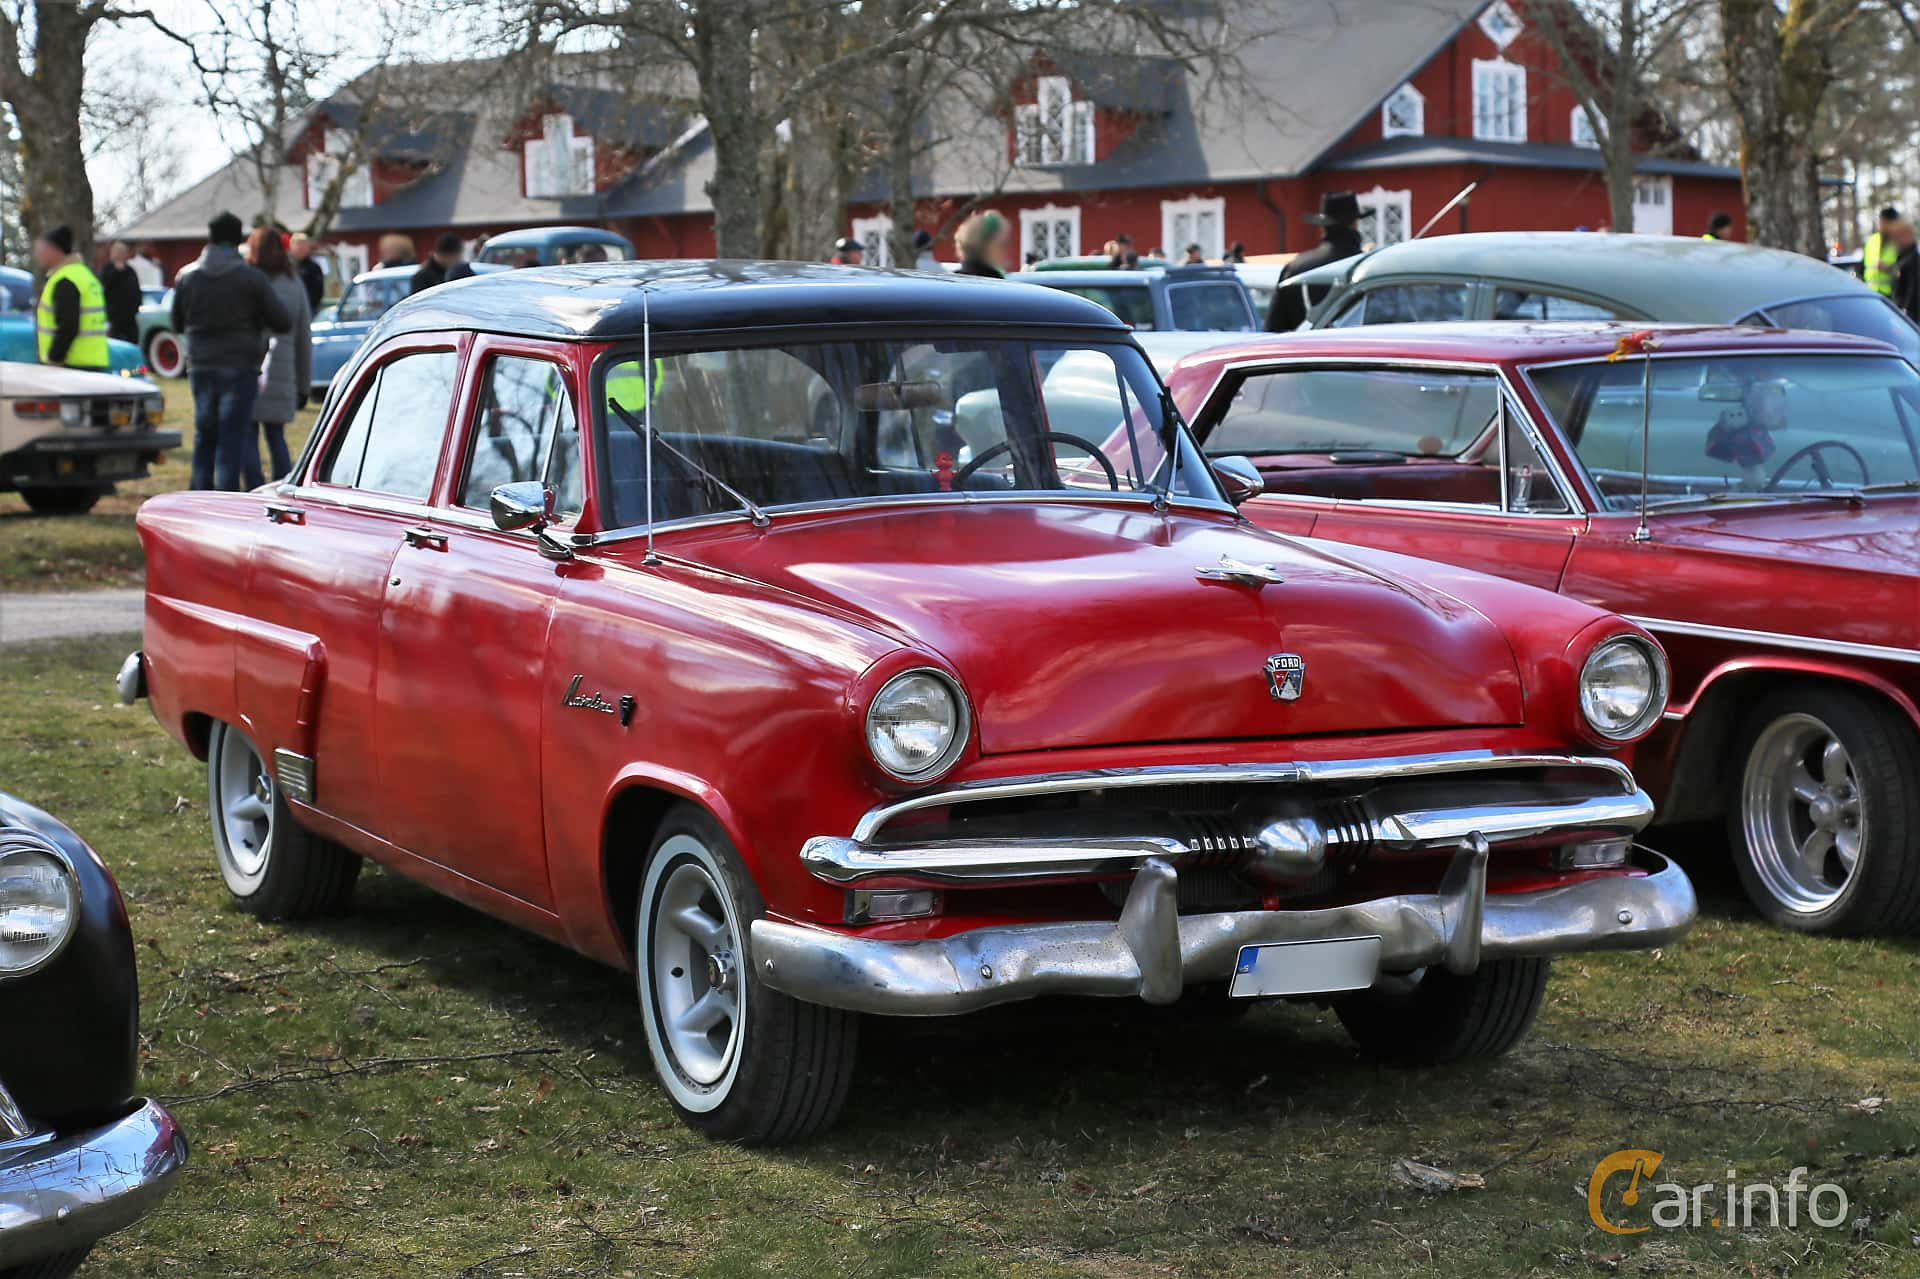 Ford Mainline Fordor Sedan 3.9 V8 Manual, 112hp, 1953 at Uddevalla Veteranbilsmarknad Backamo, Ljungsk 2019